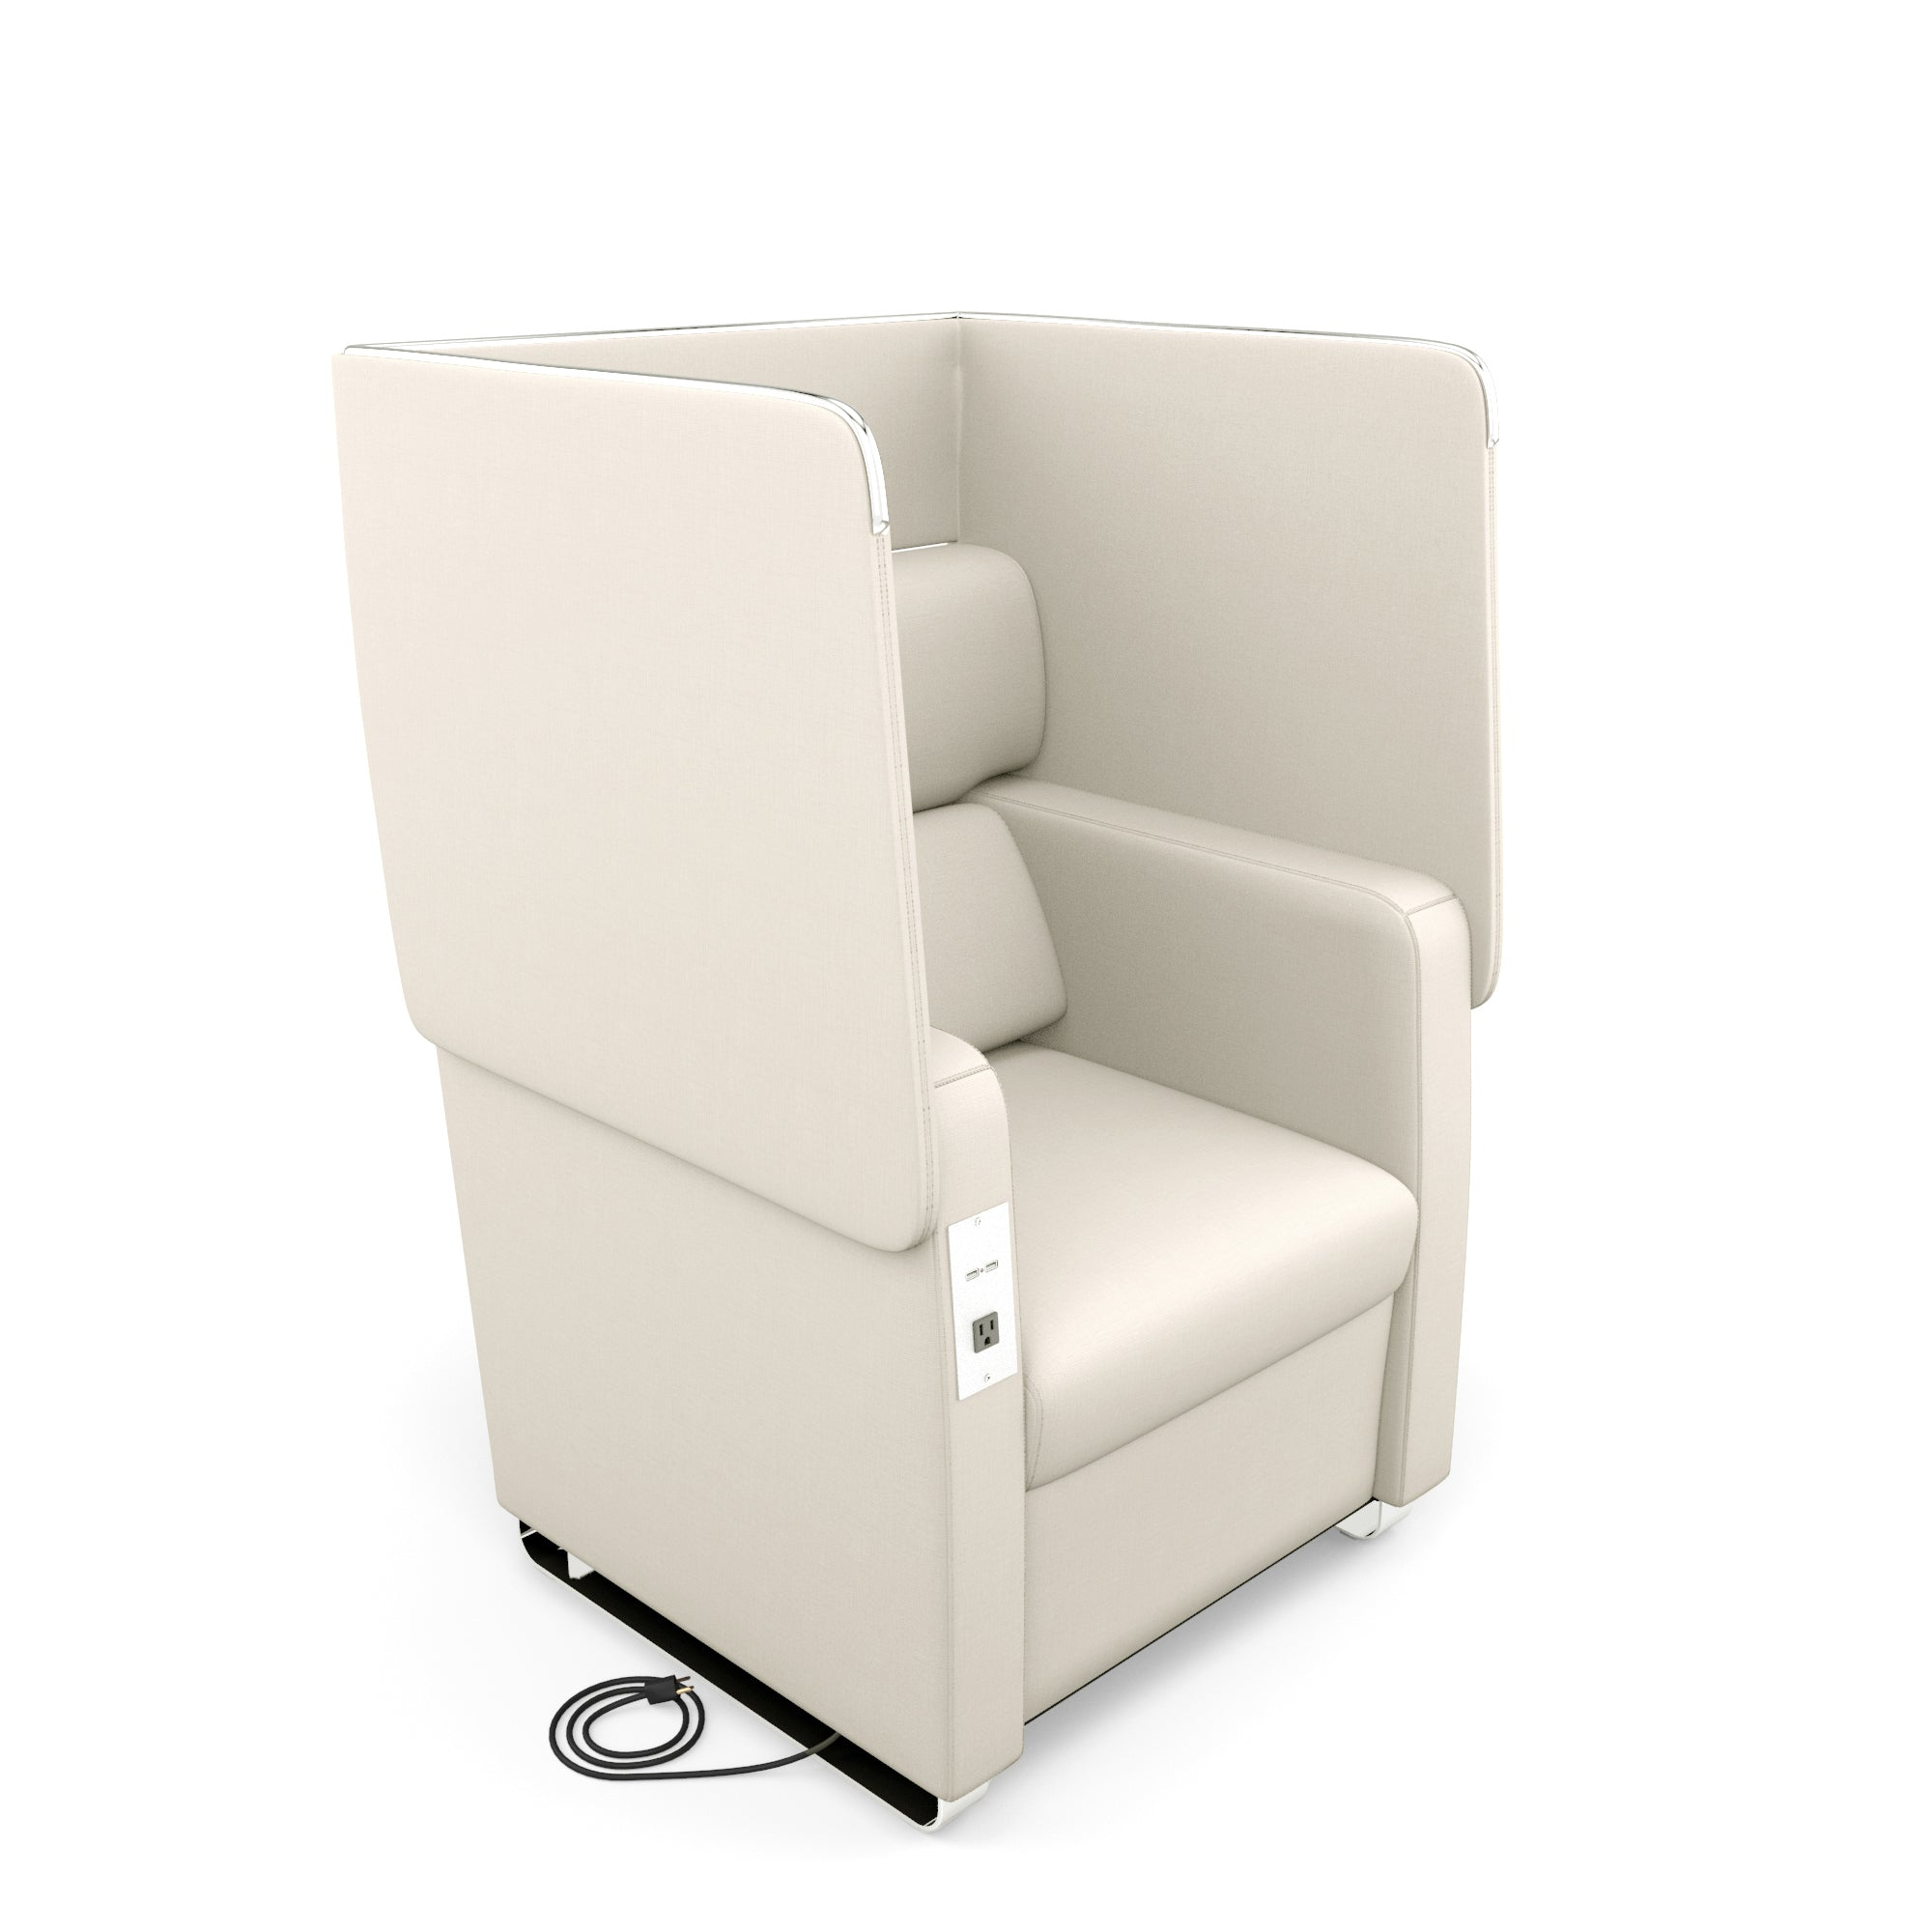 Ofminc Model 2201 Morph Series Soft Seating Lounge Chair